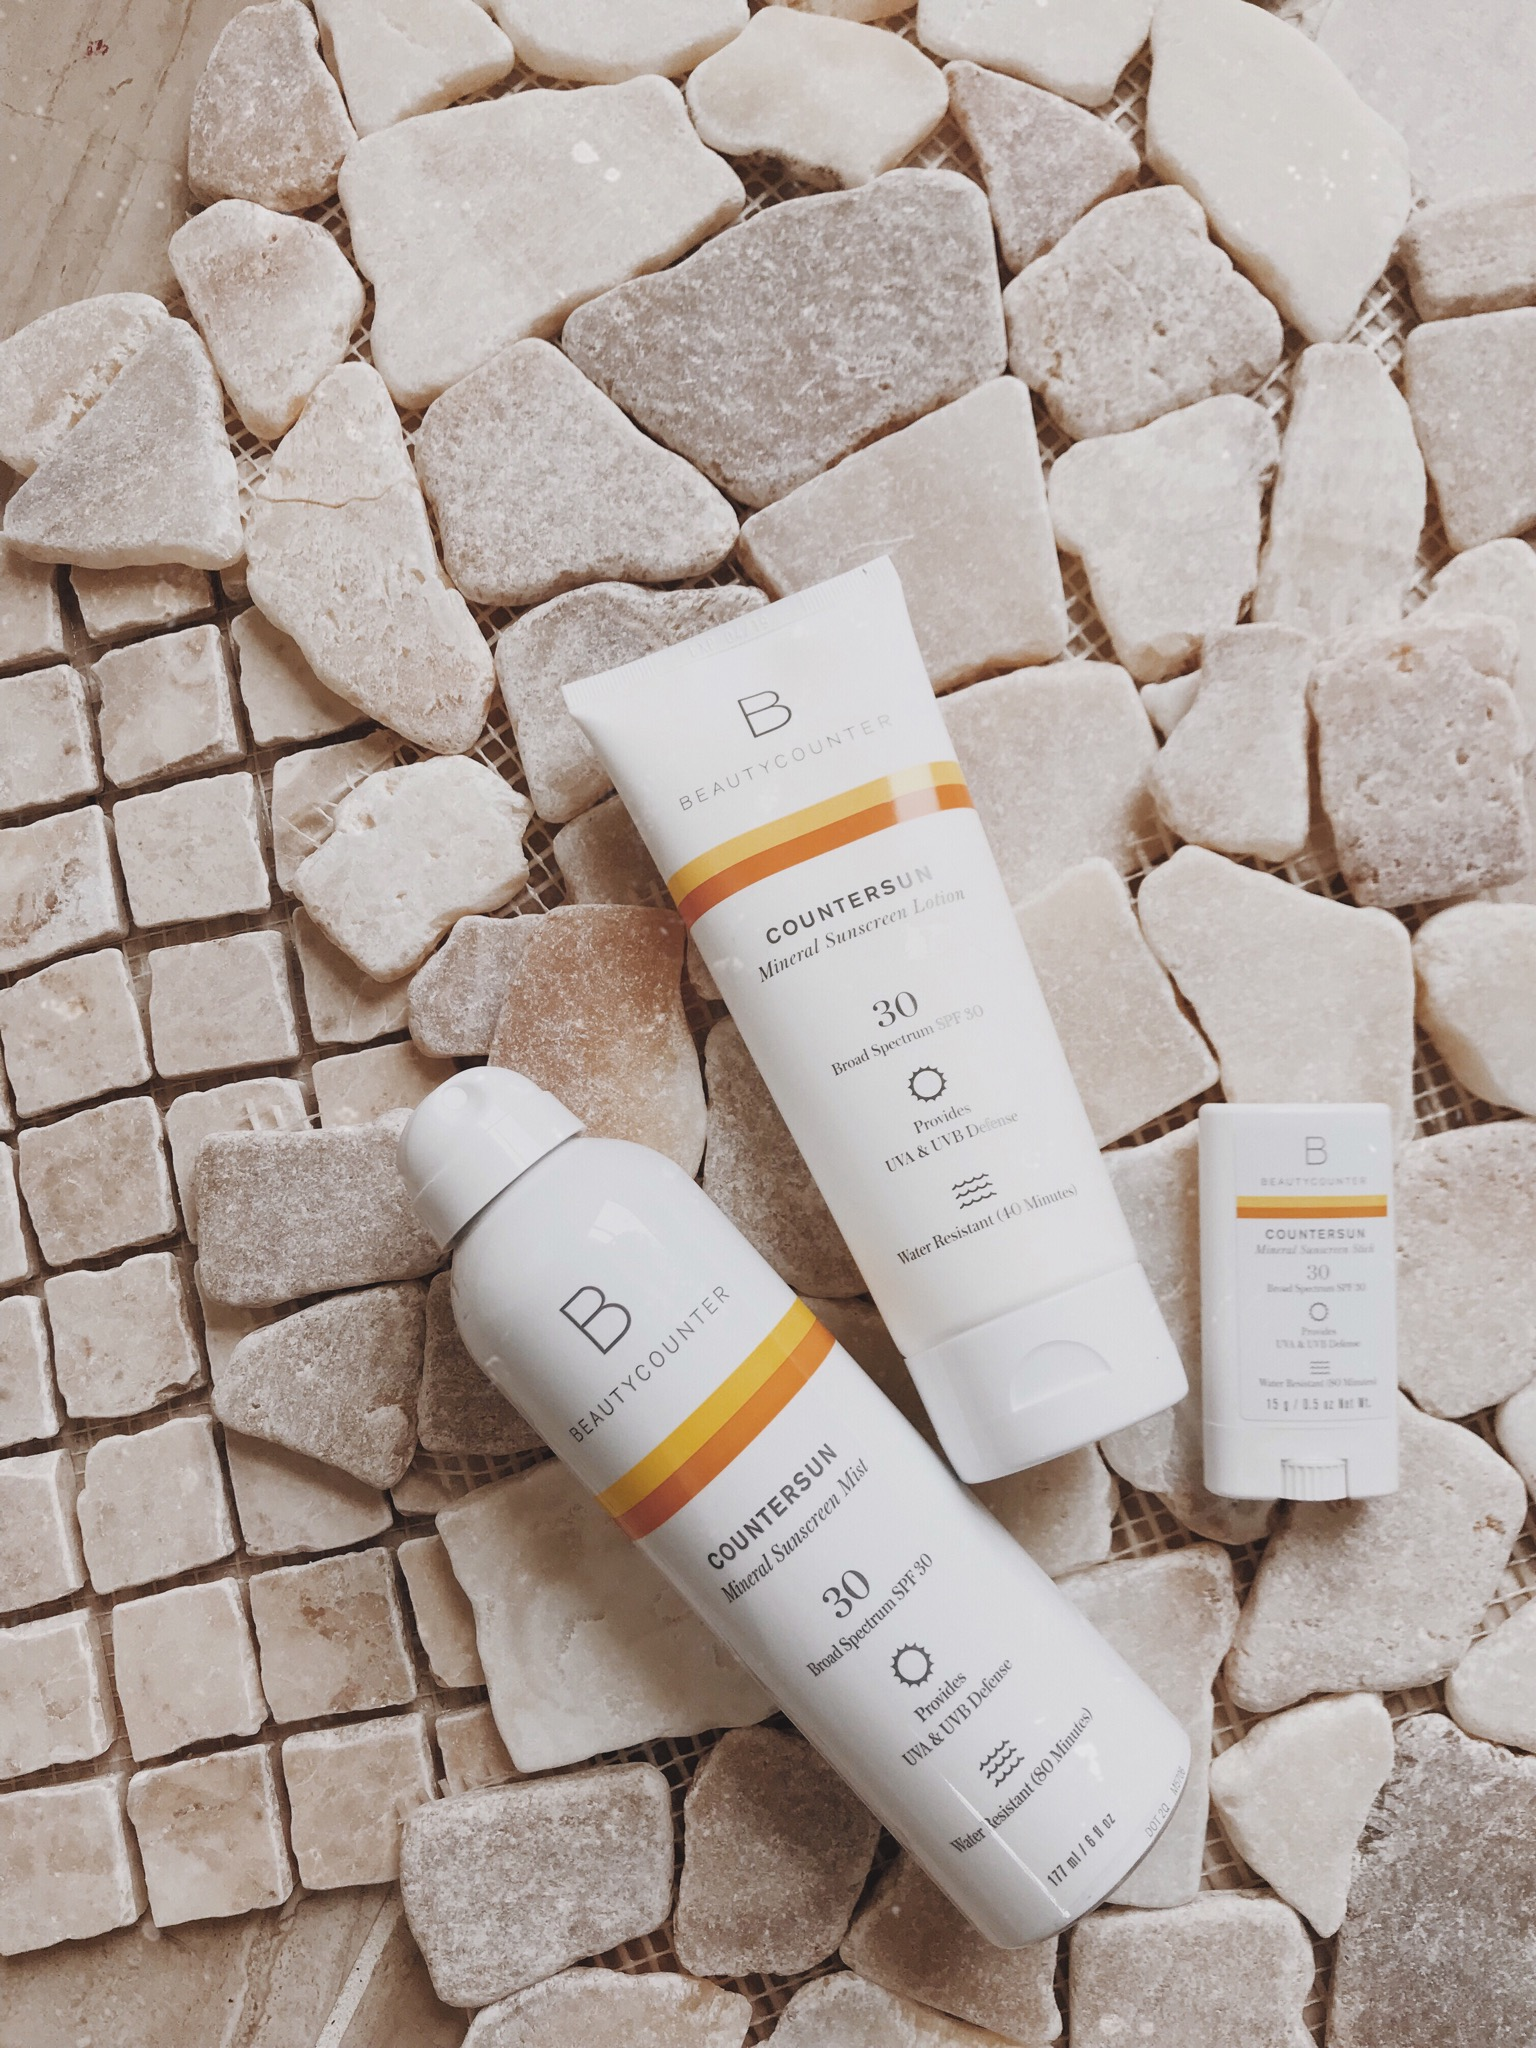 talking about sunscreen safety and why to choose mineral over non-mineral (chemical) options with Beautycounter